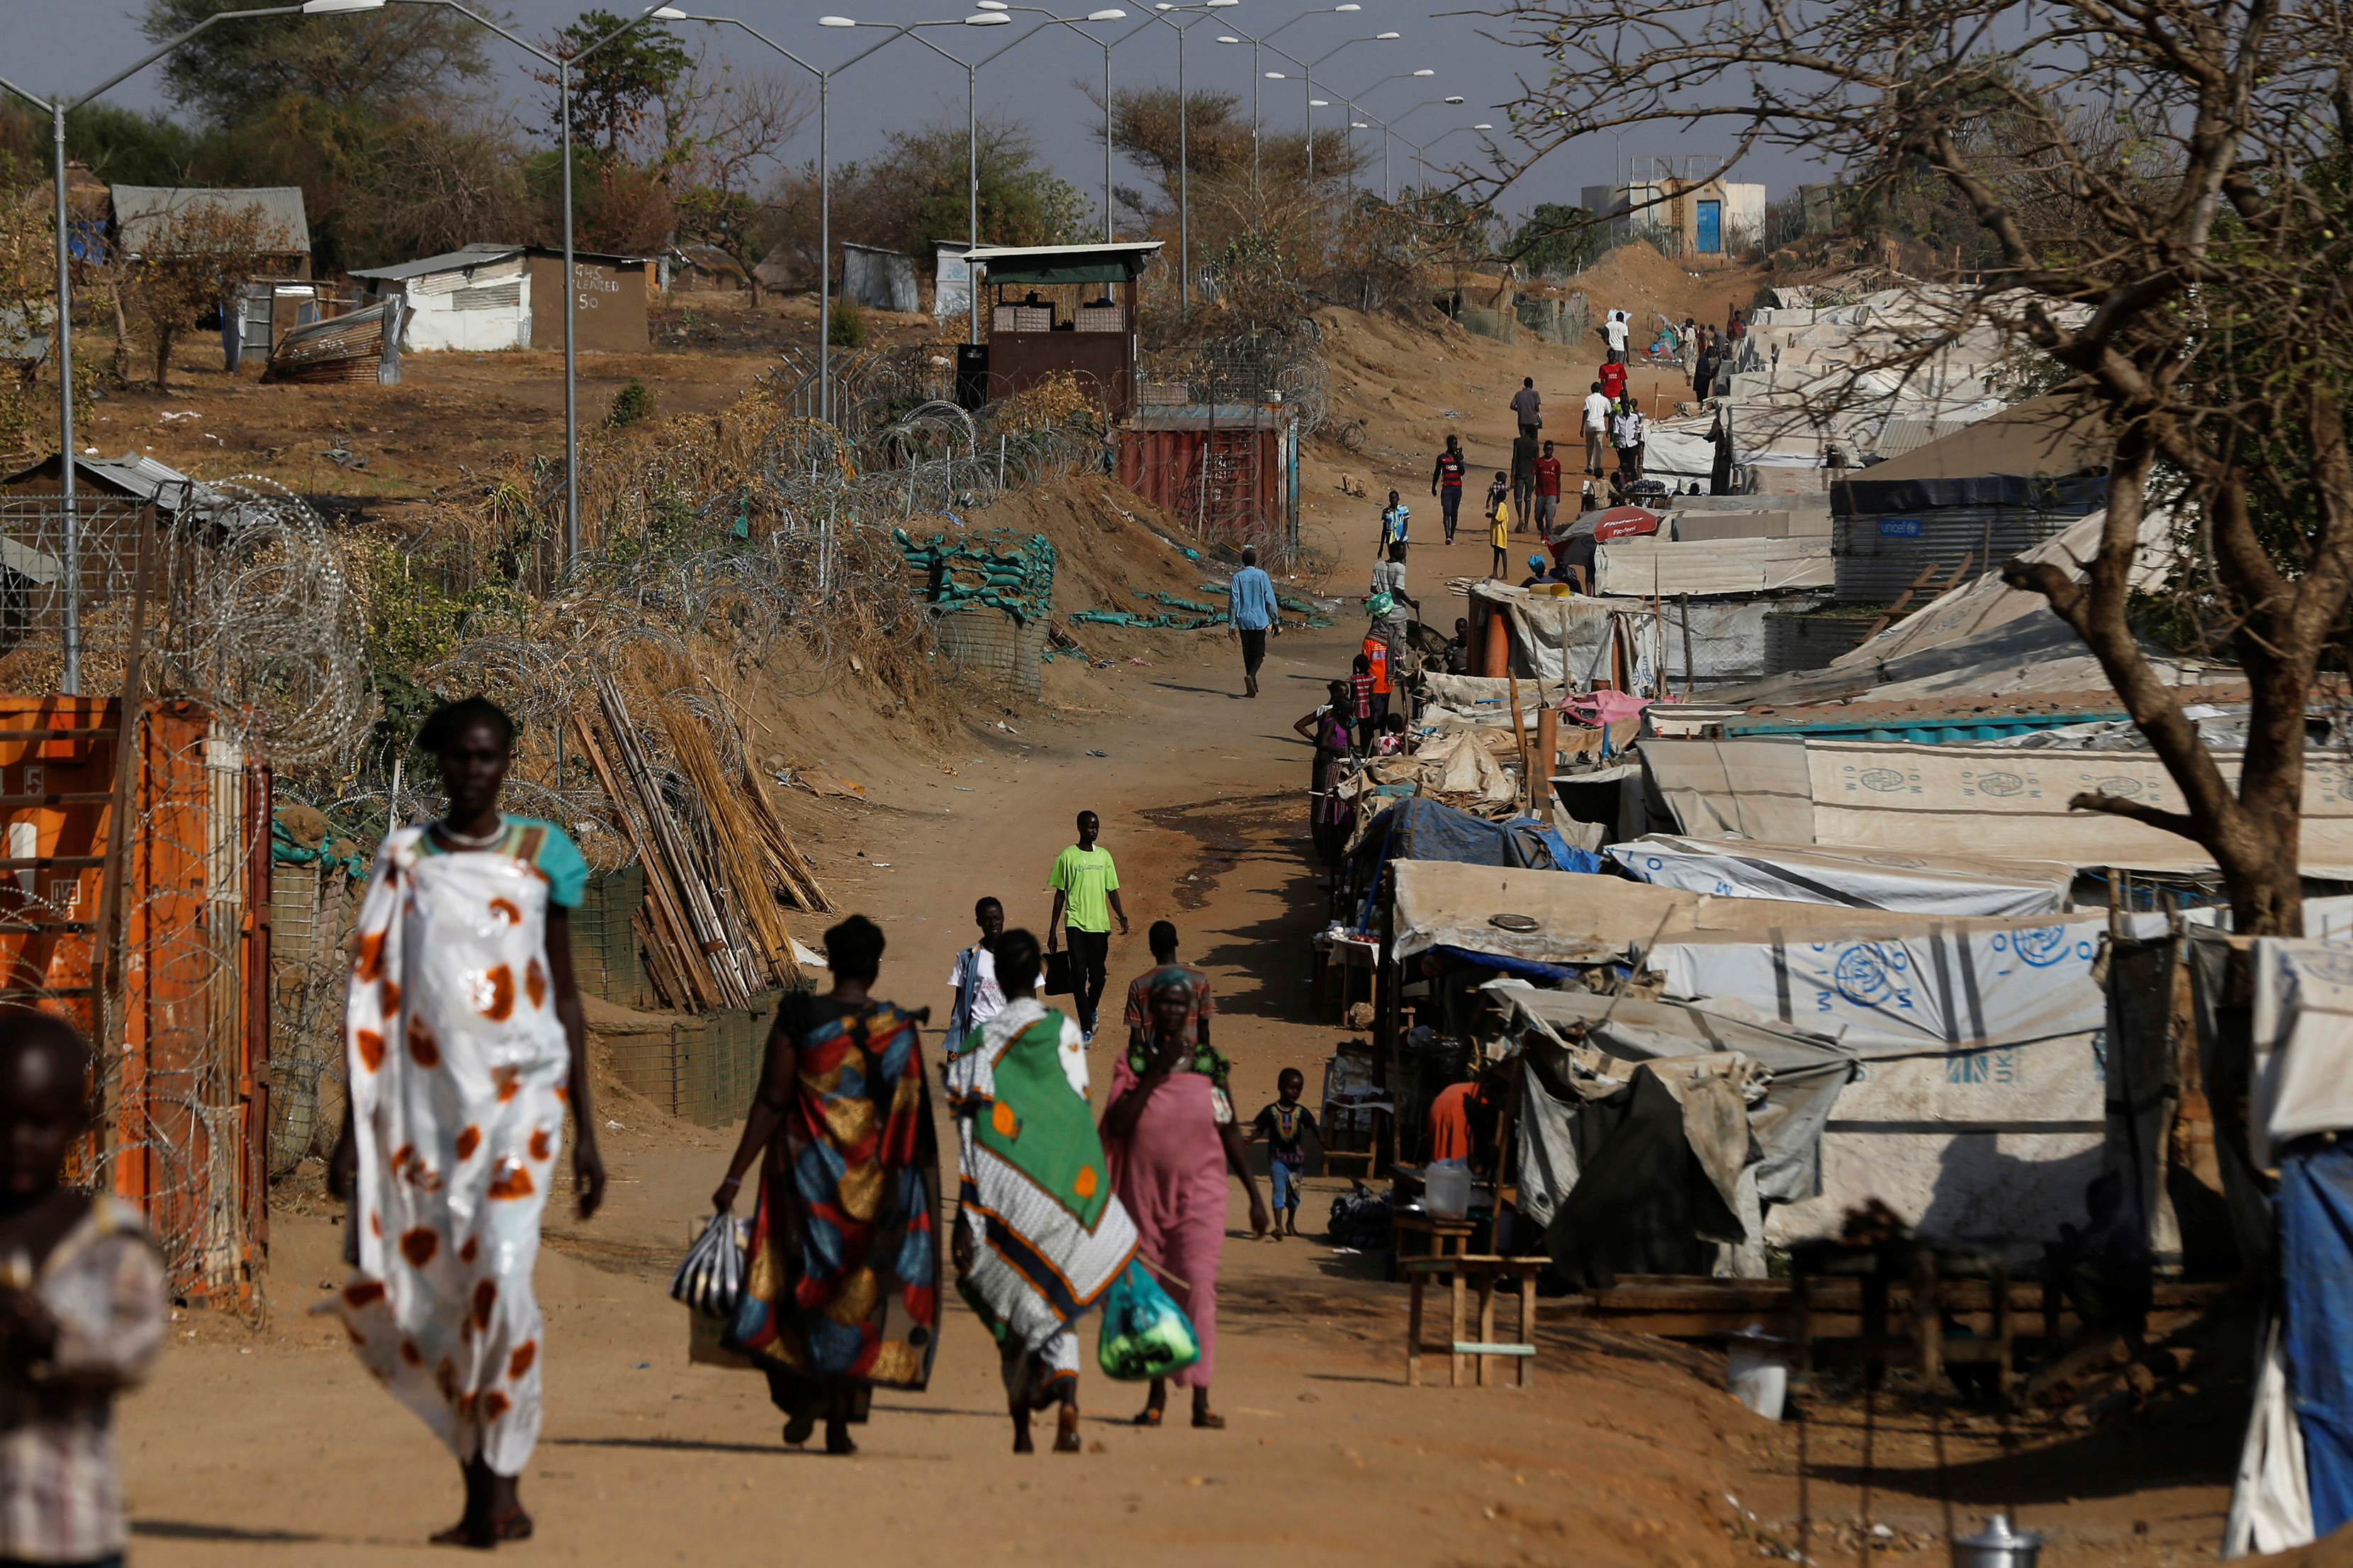 Figures of the week: Fragility and extreme poverty